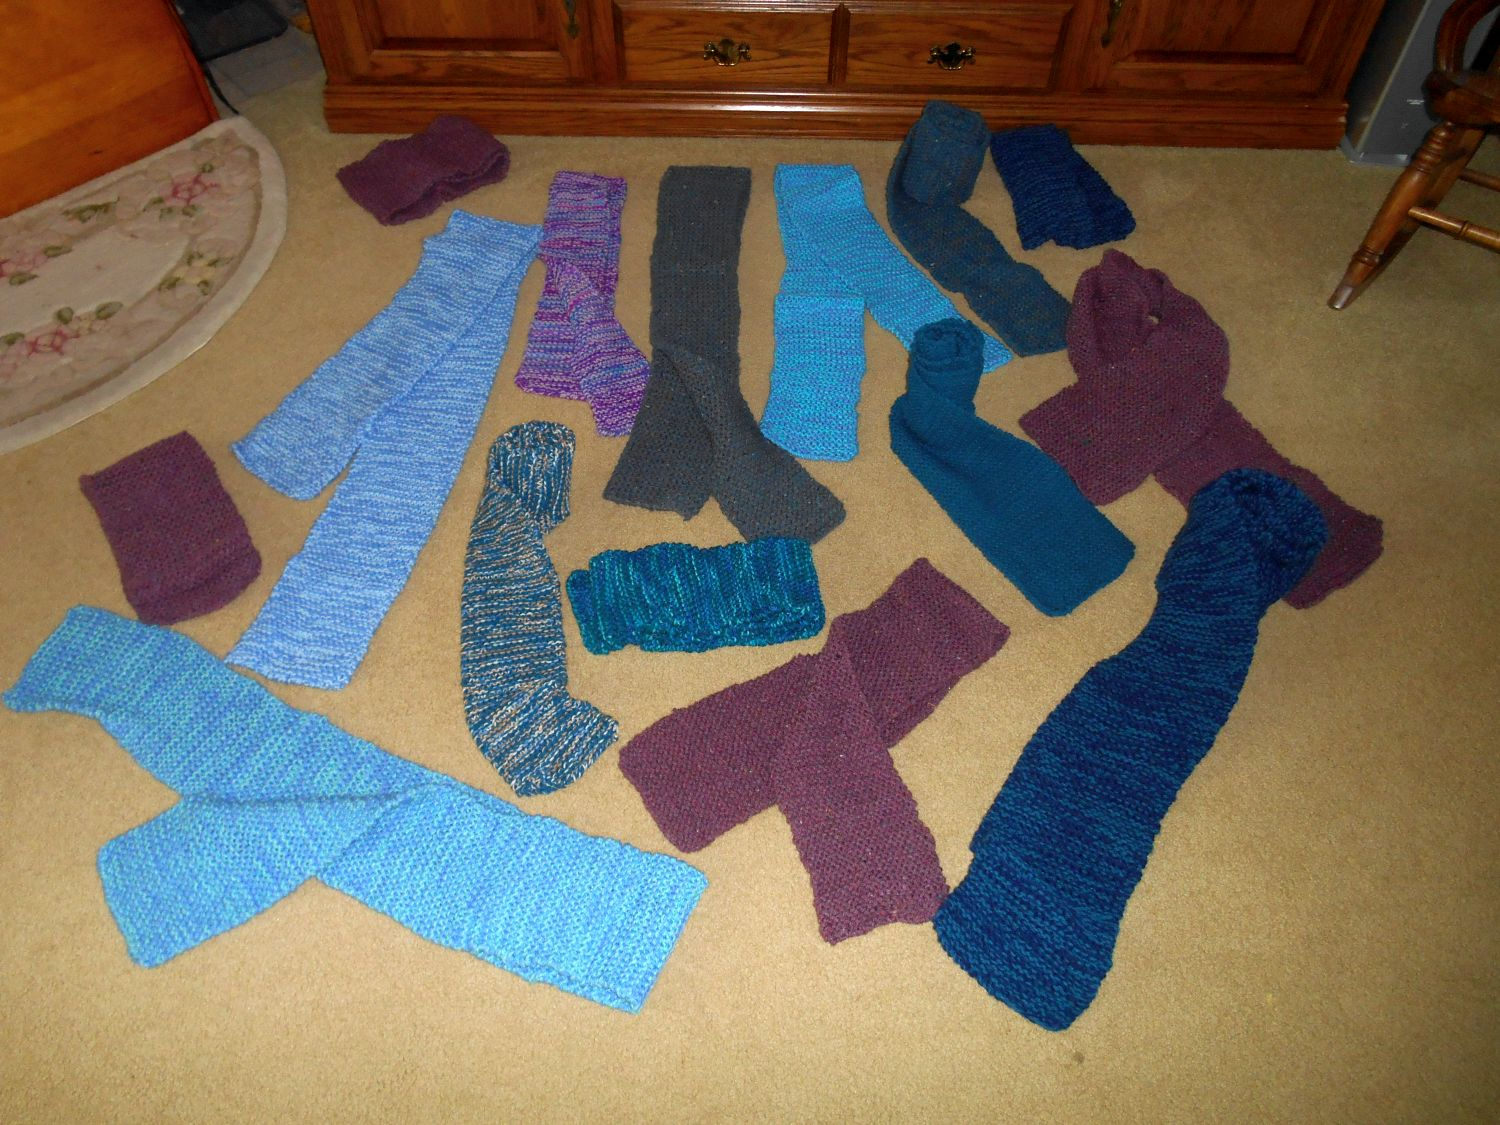 Knitting Scarves For The Homeless : Bridge and beyond scarves warm homeless in need